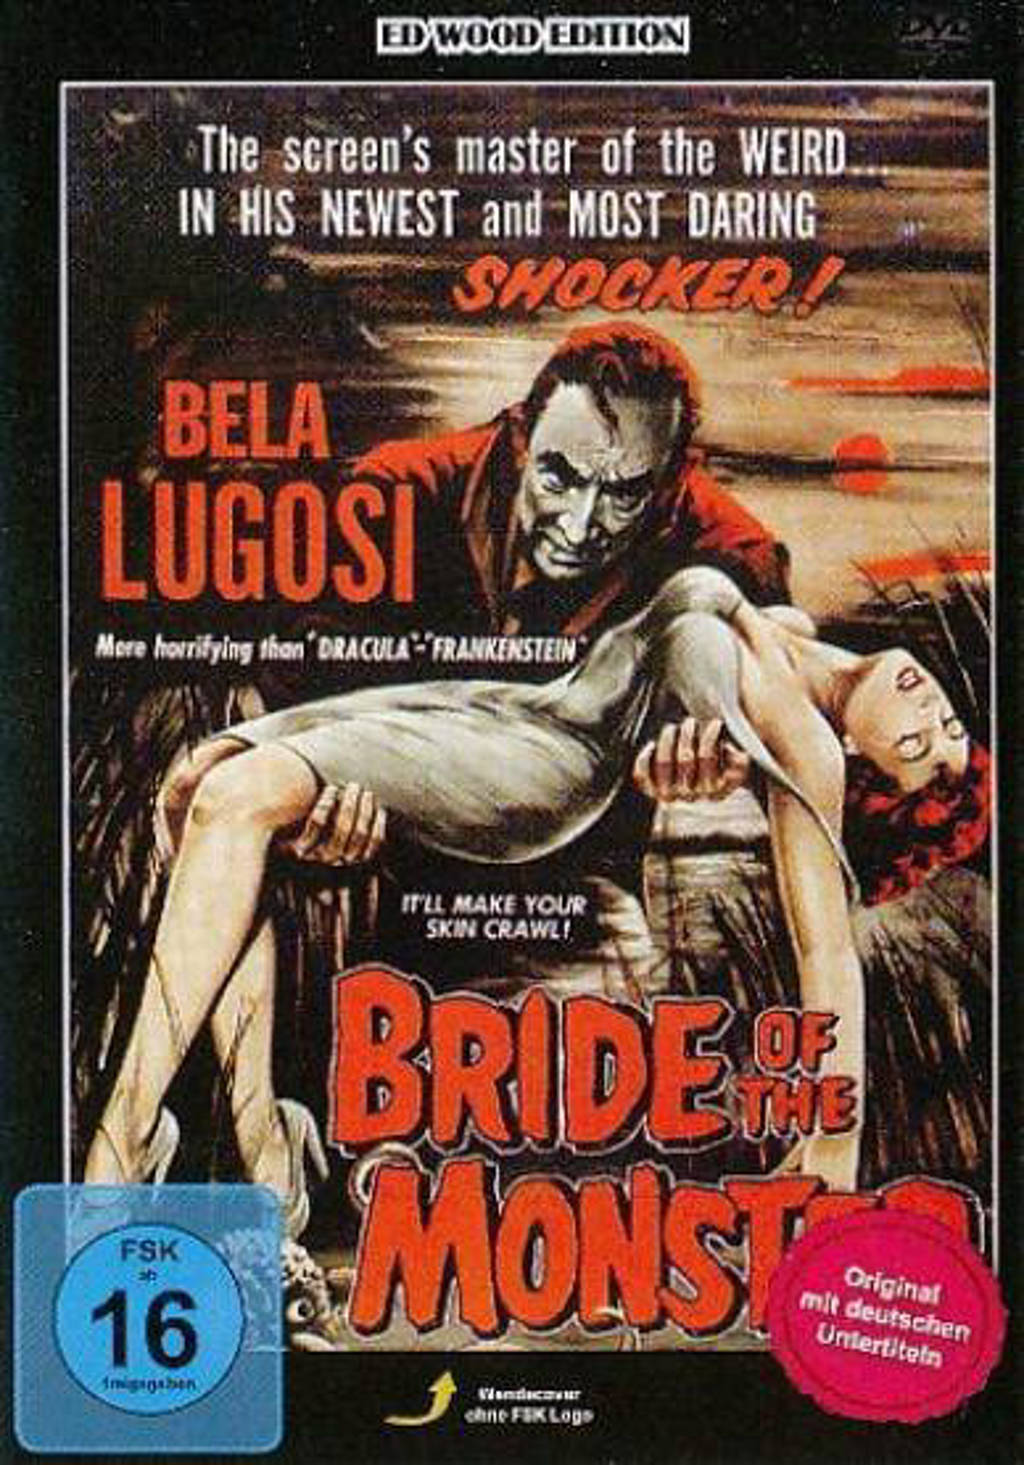 Ed Wood - Bride Of The Monster (DVD)